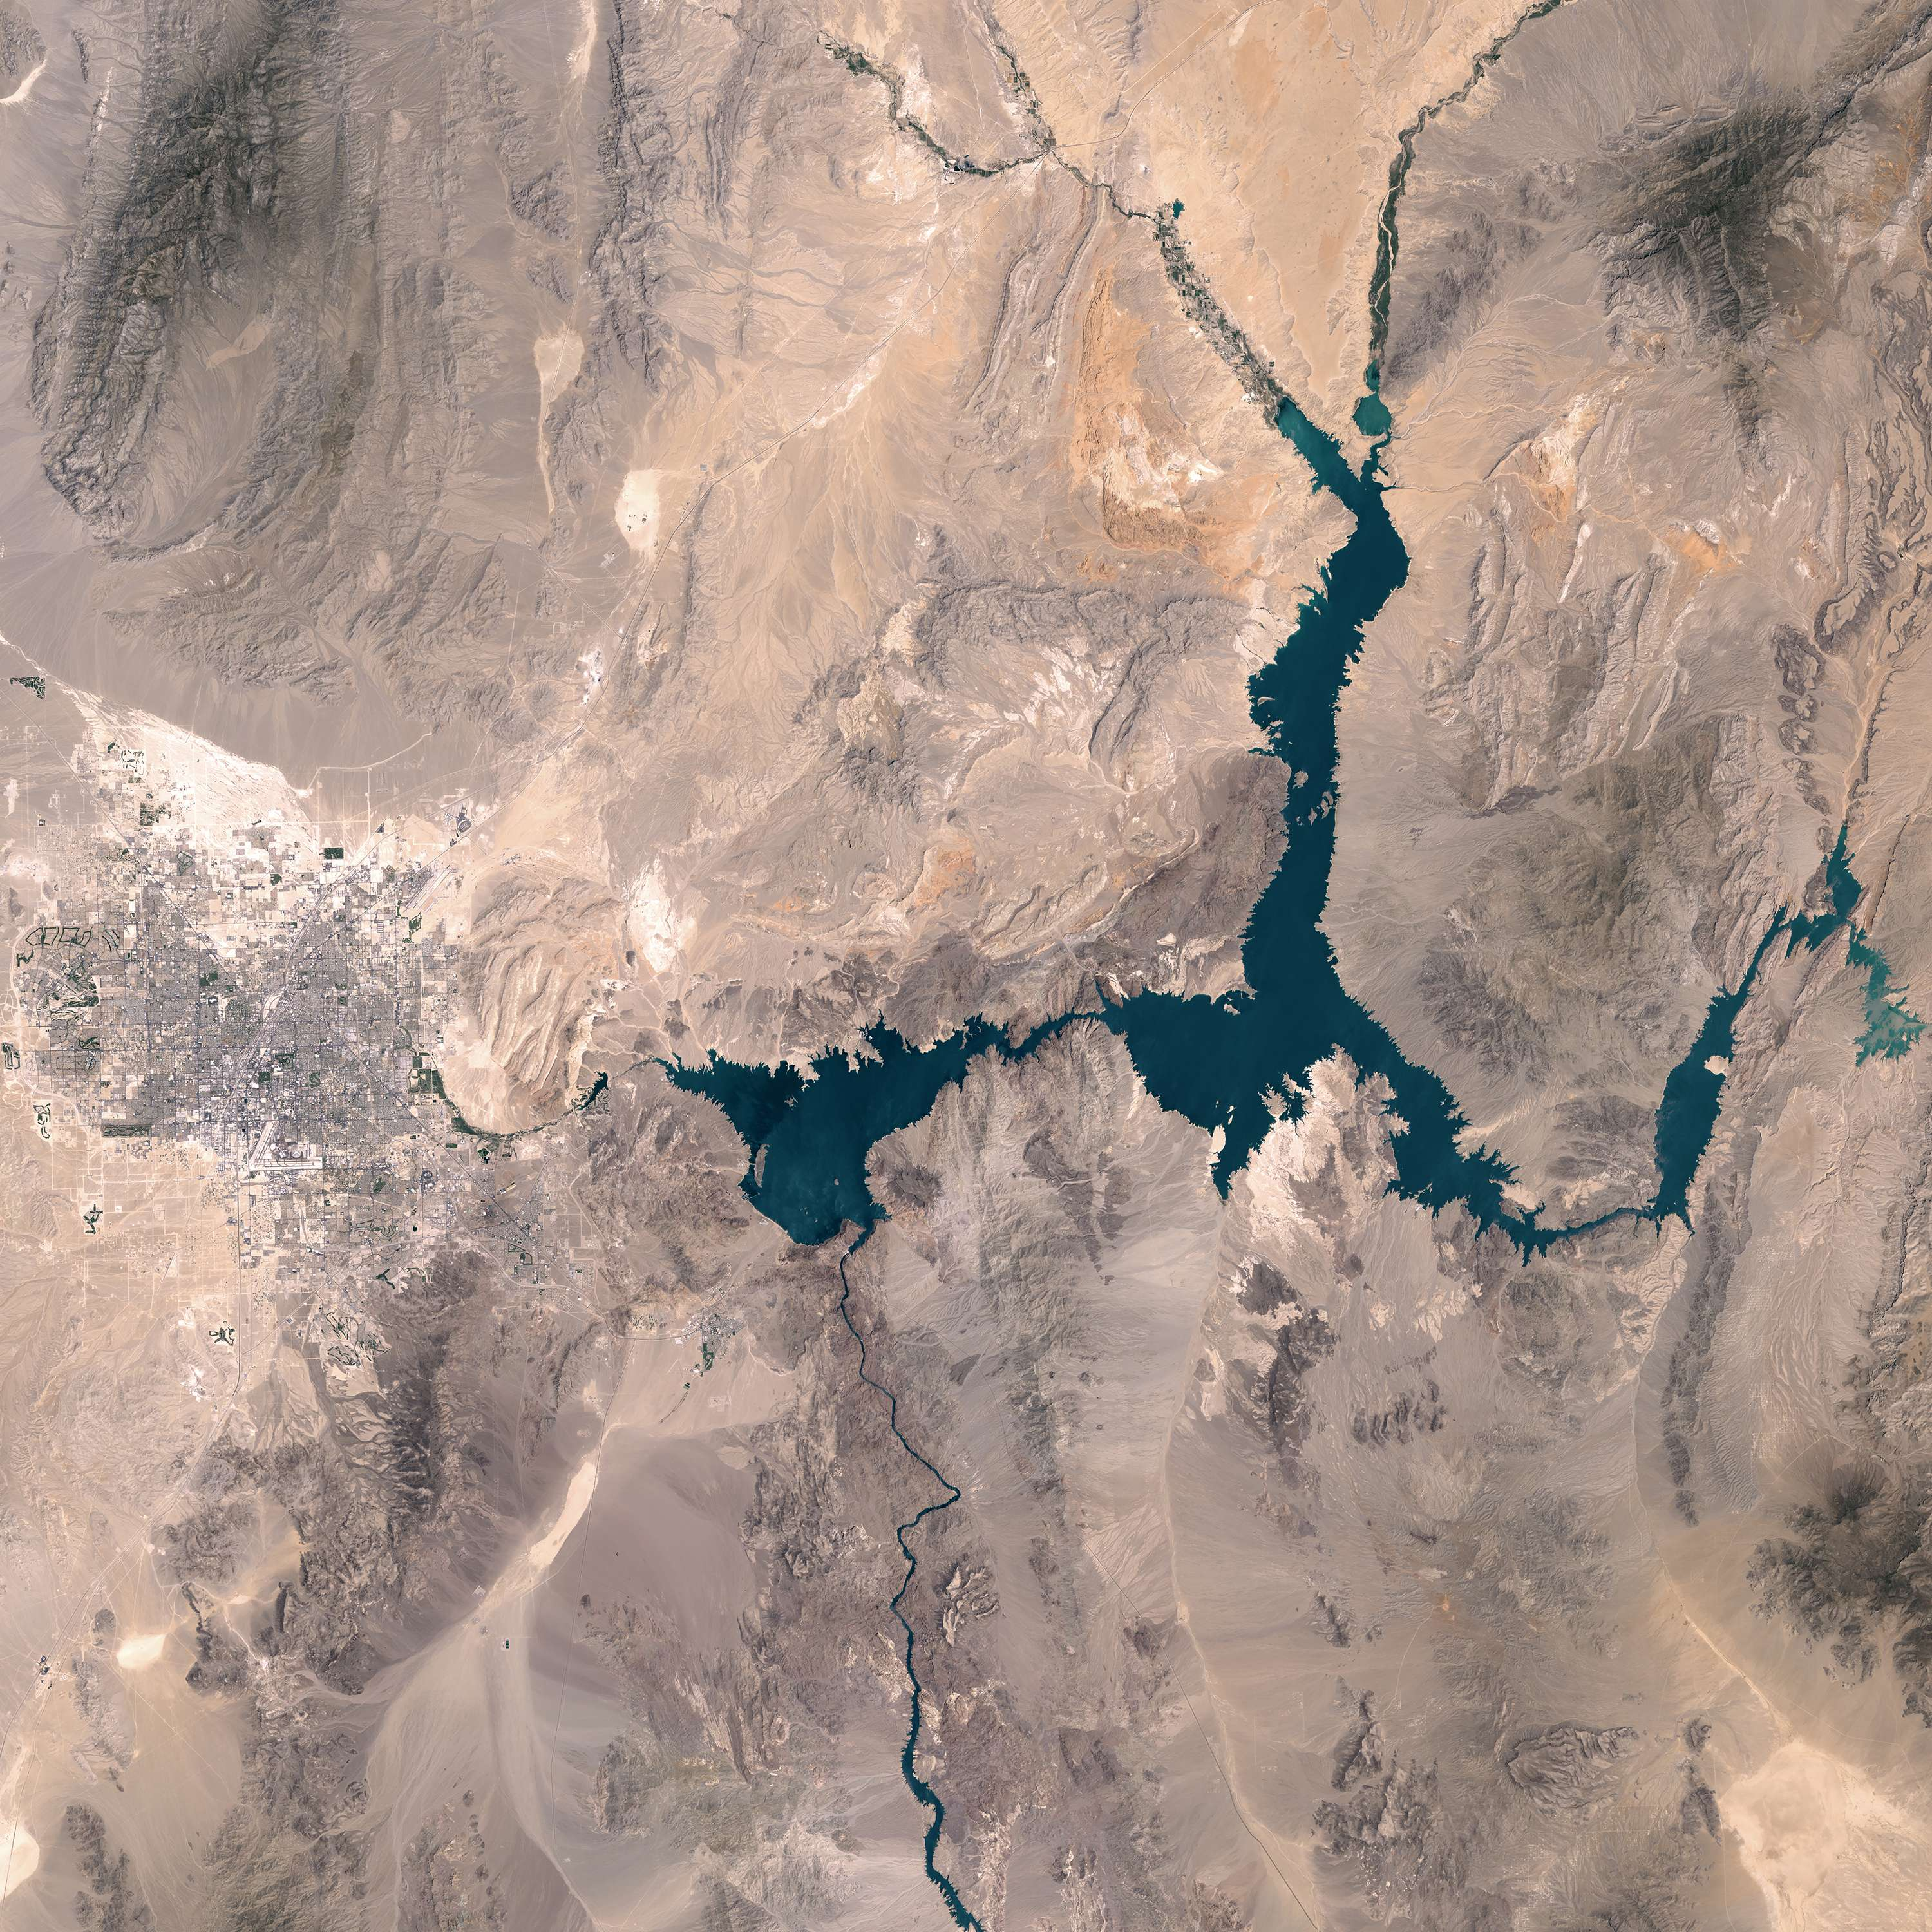 Losses in Lake Mead